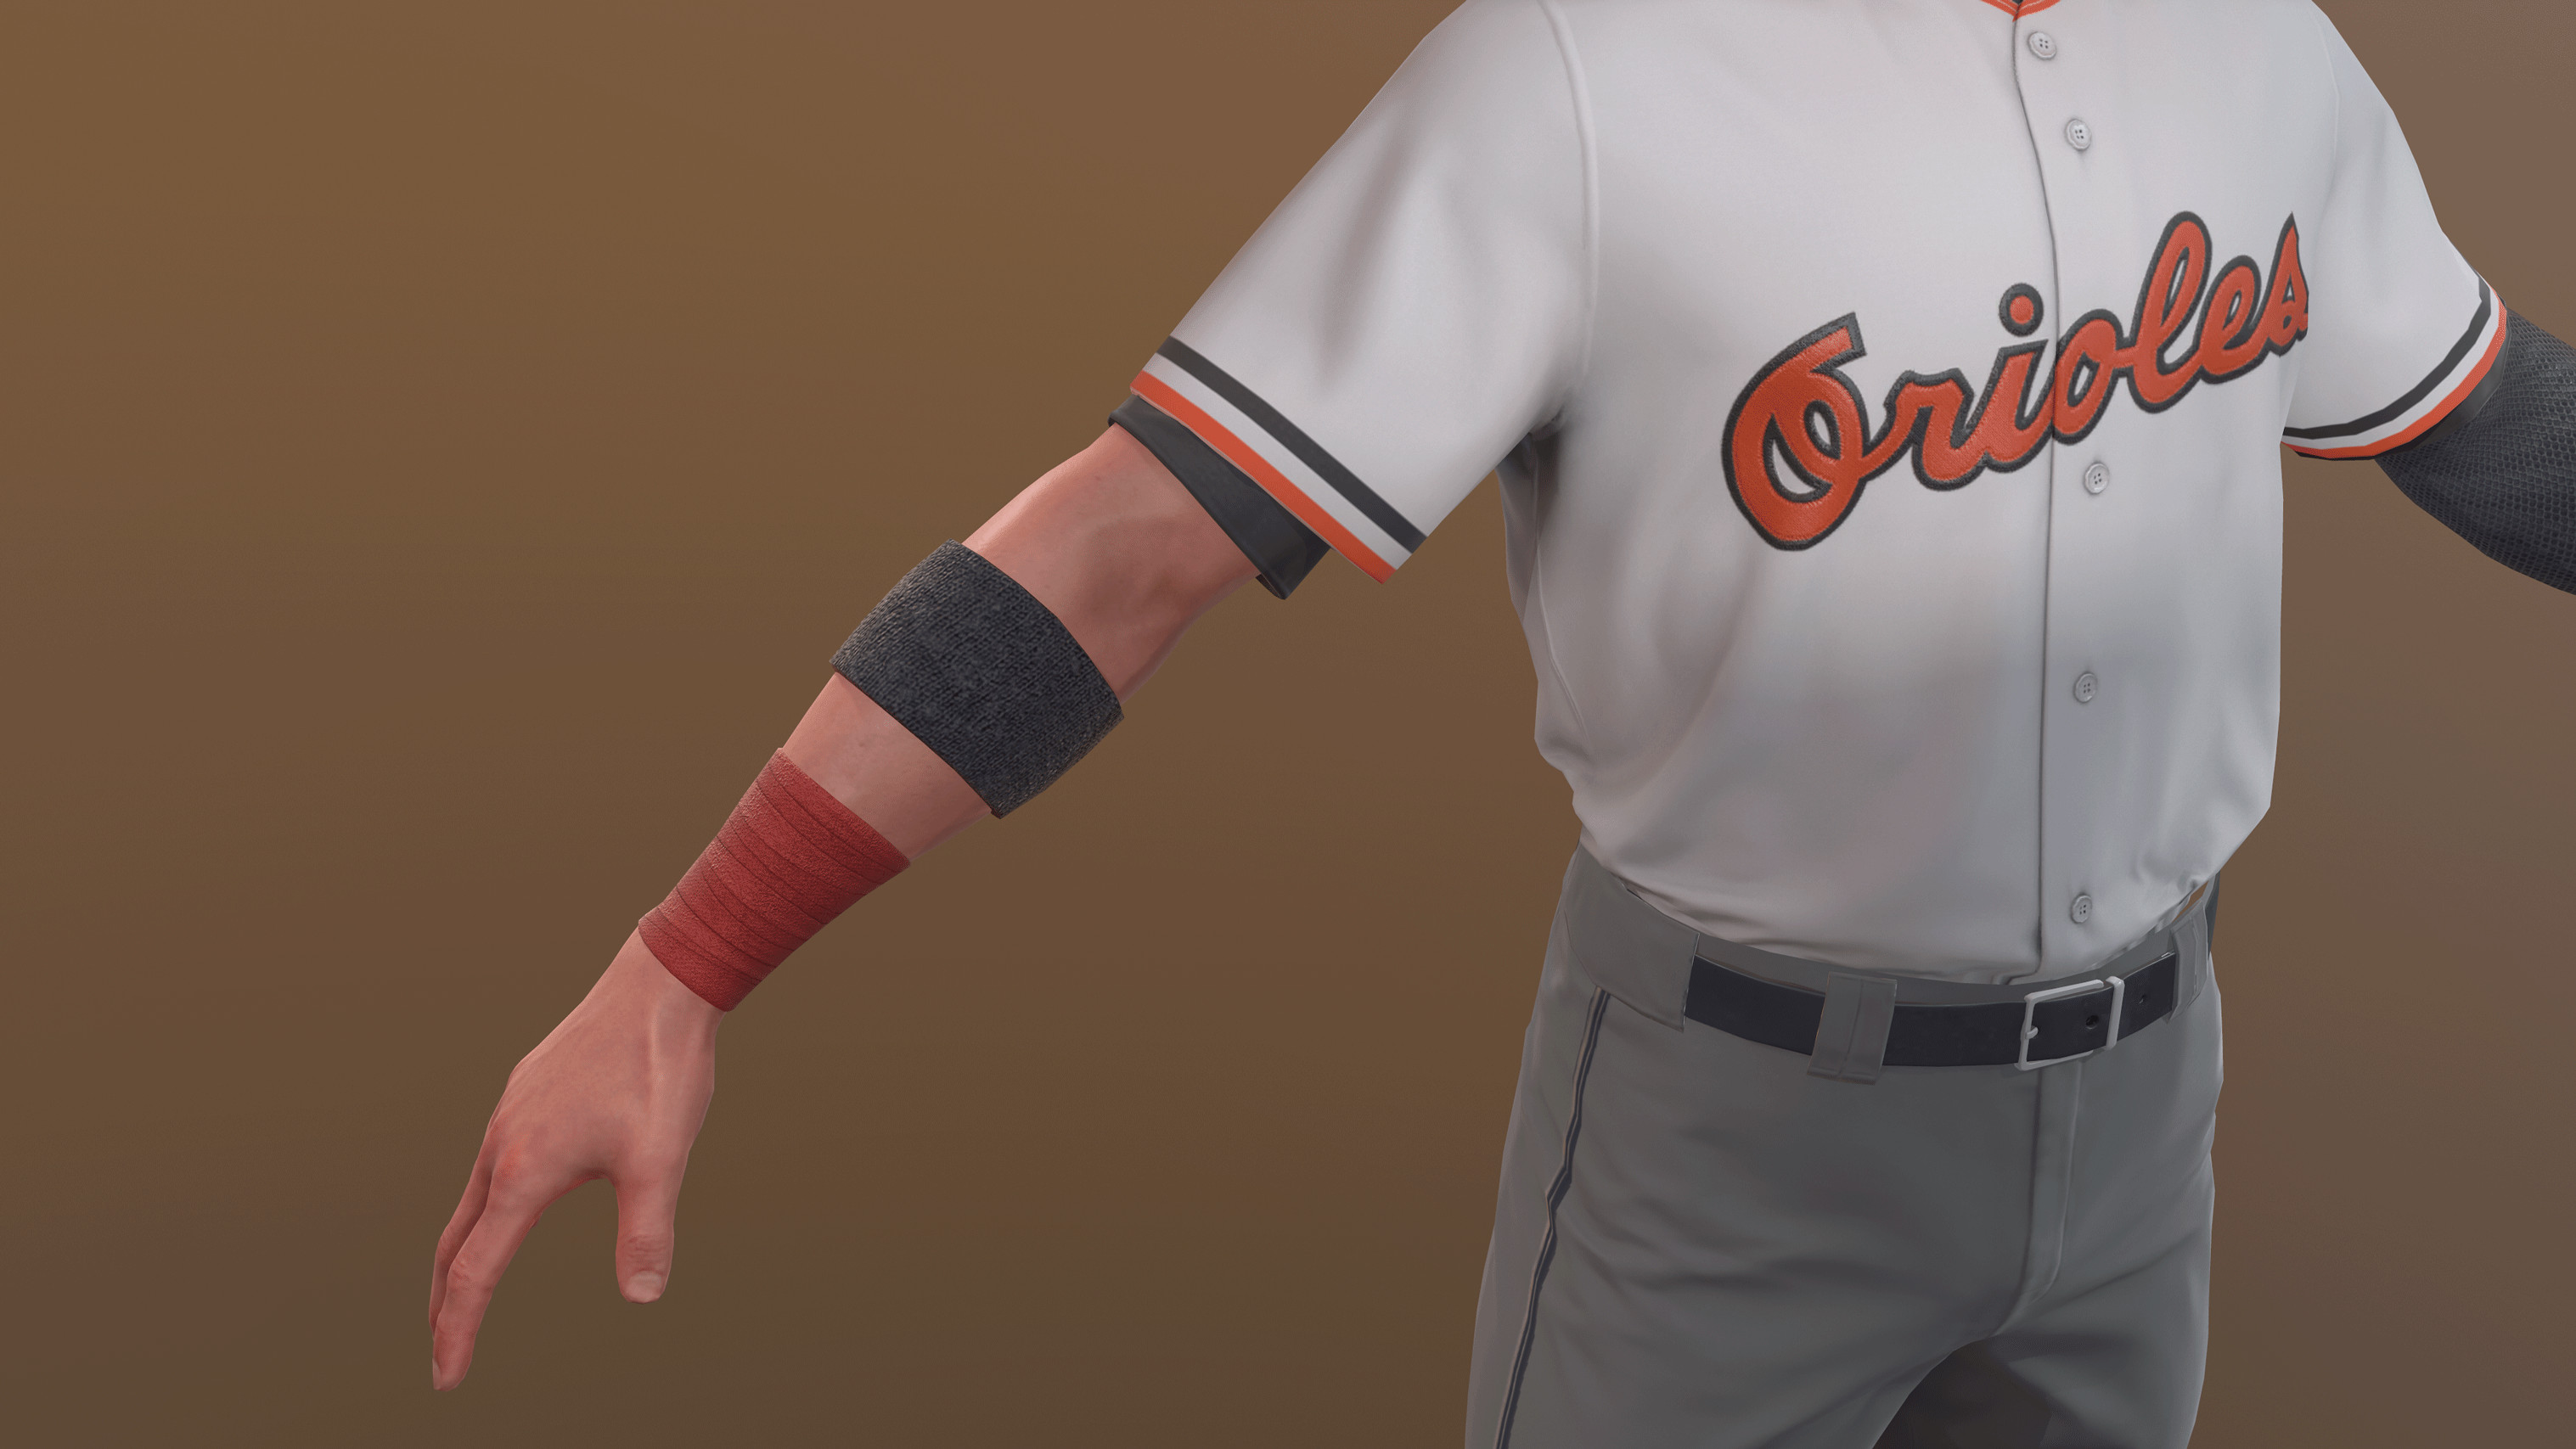 Wrist tape and arm band